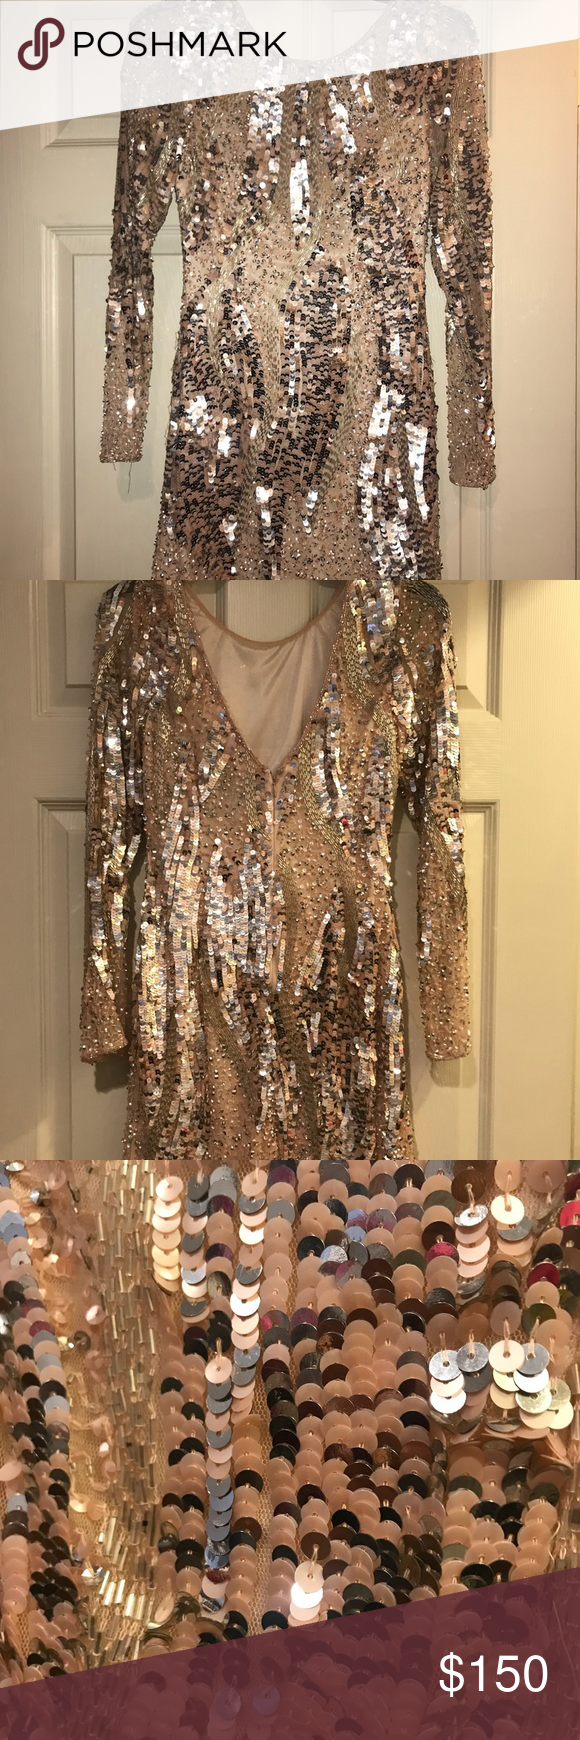 Beaded long sleeve cocktail dress champagne beads and minis